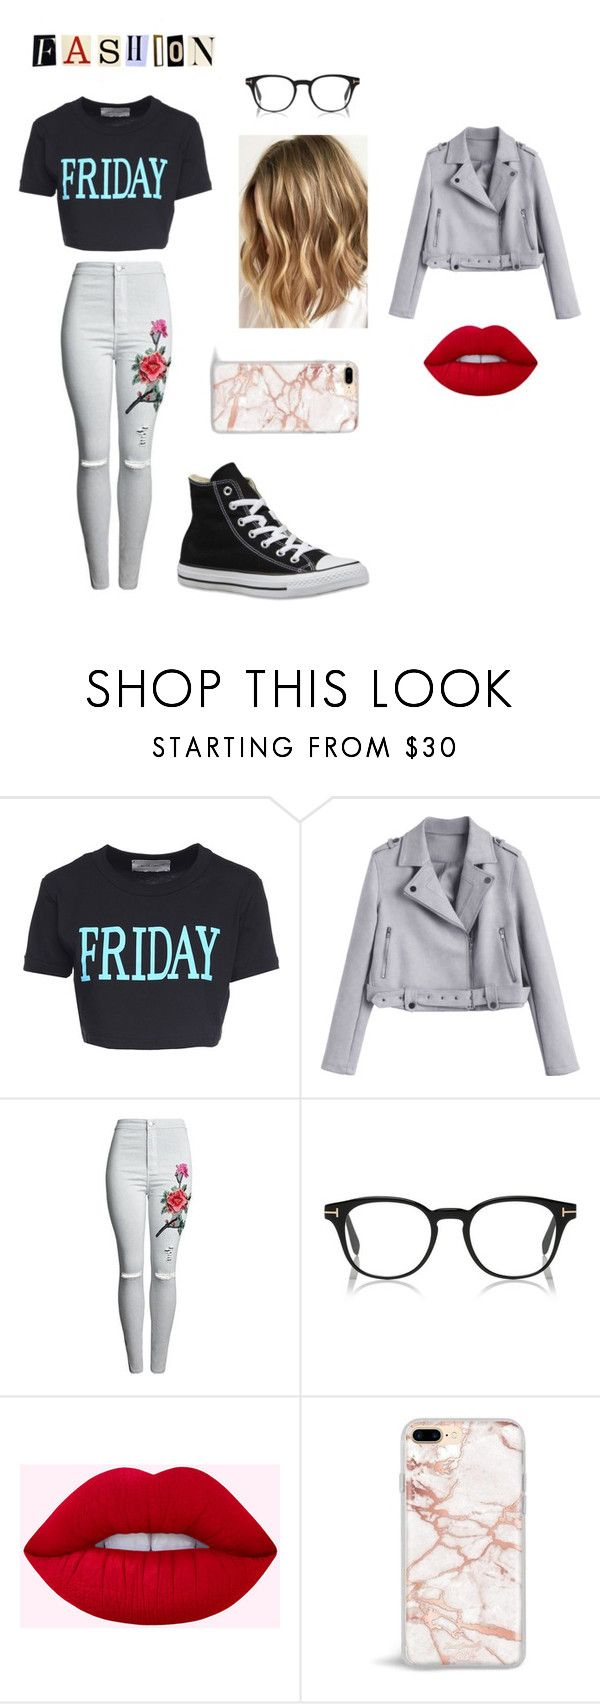 Fashion Friday by dariamiruna on Polyvore featuring Alberta Ferretti and Converse